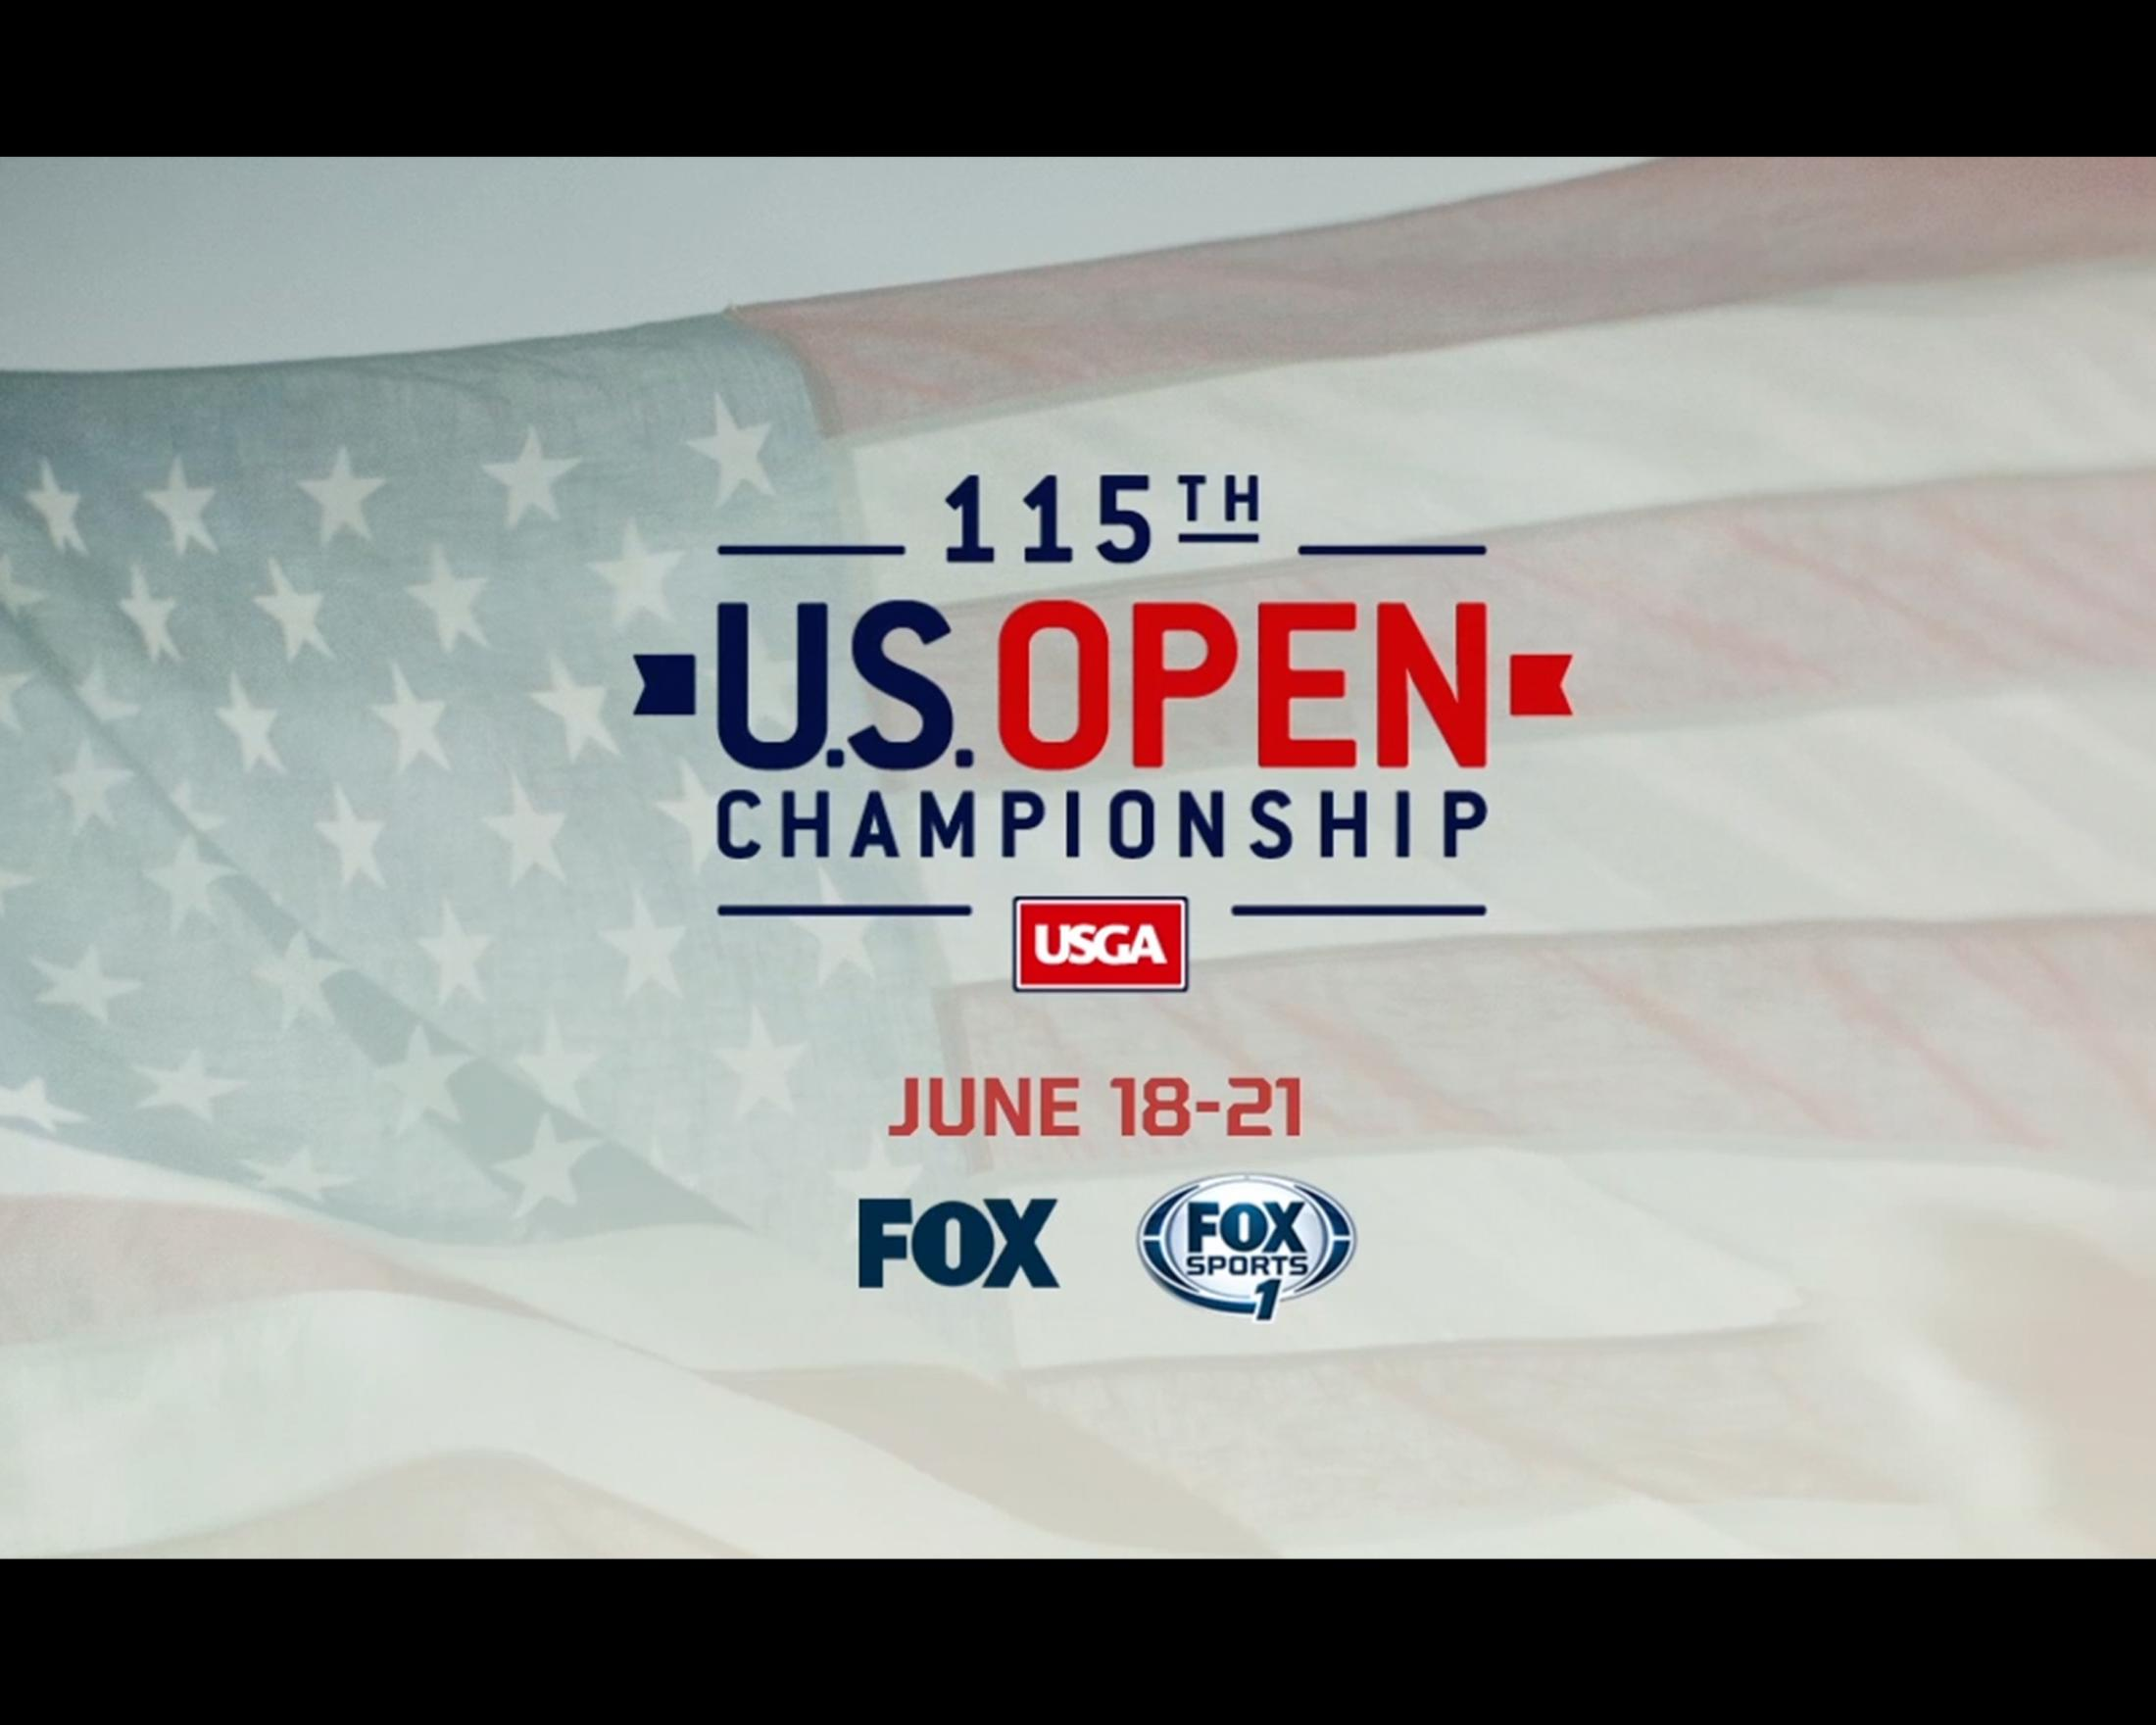 Thumbnail for U.S. Open on FOX/FS1